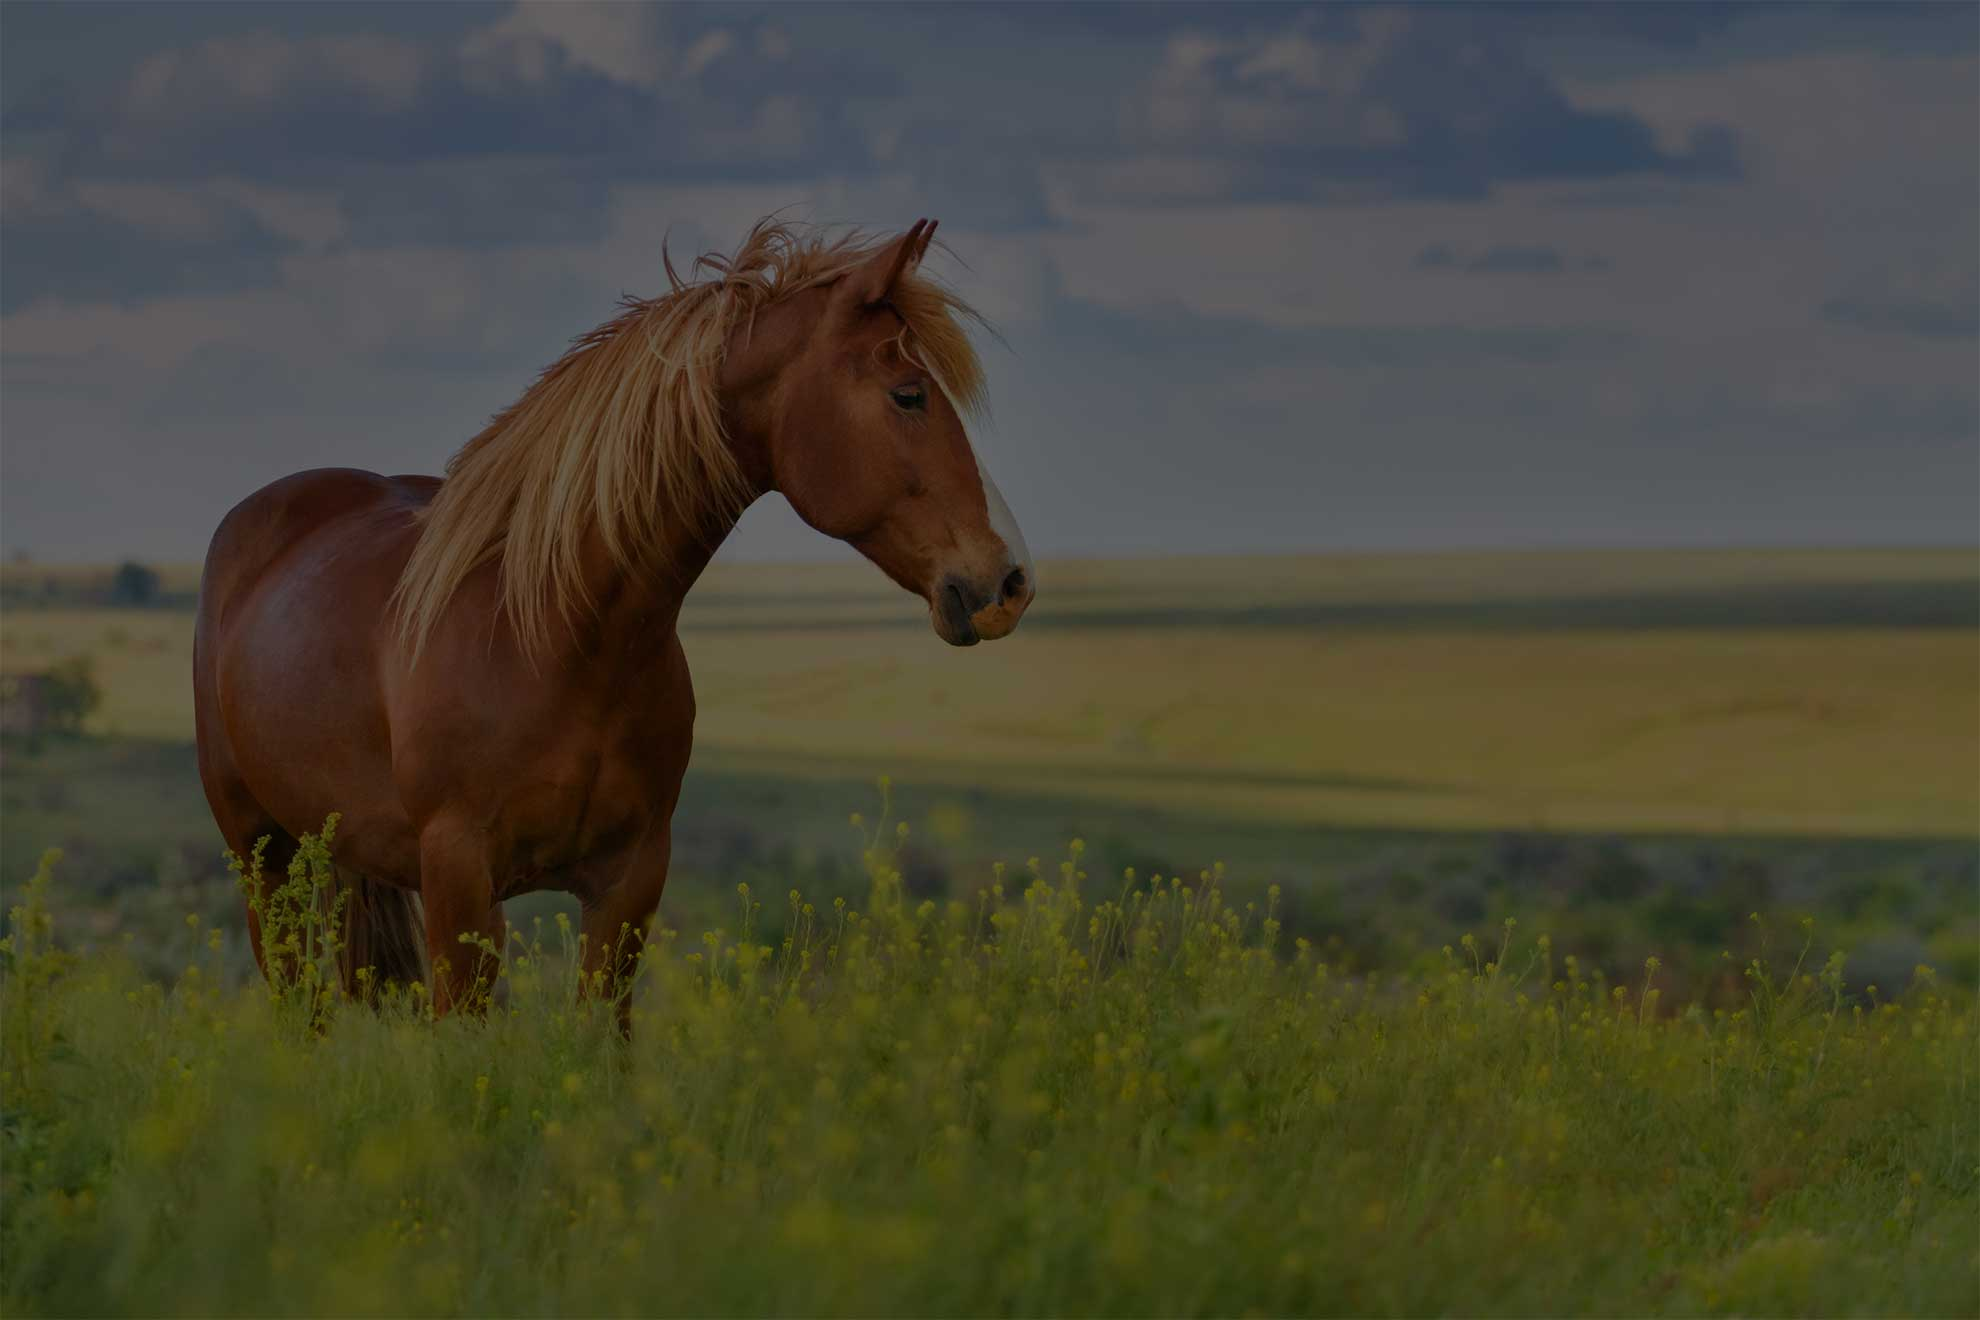 Red horse with long mane in flower field against sky